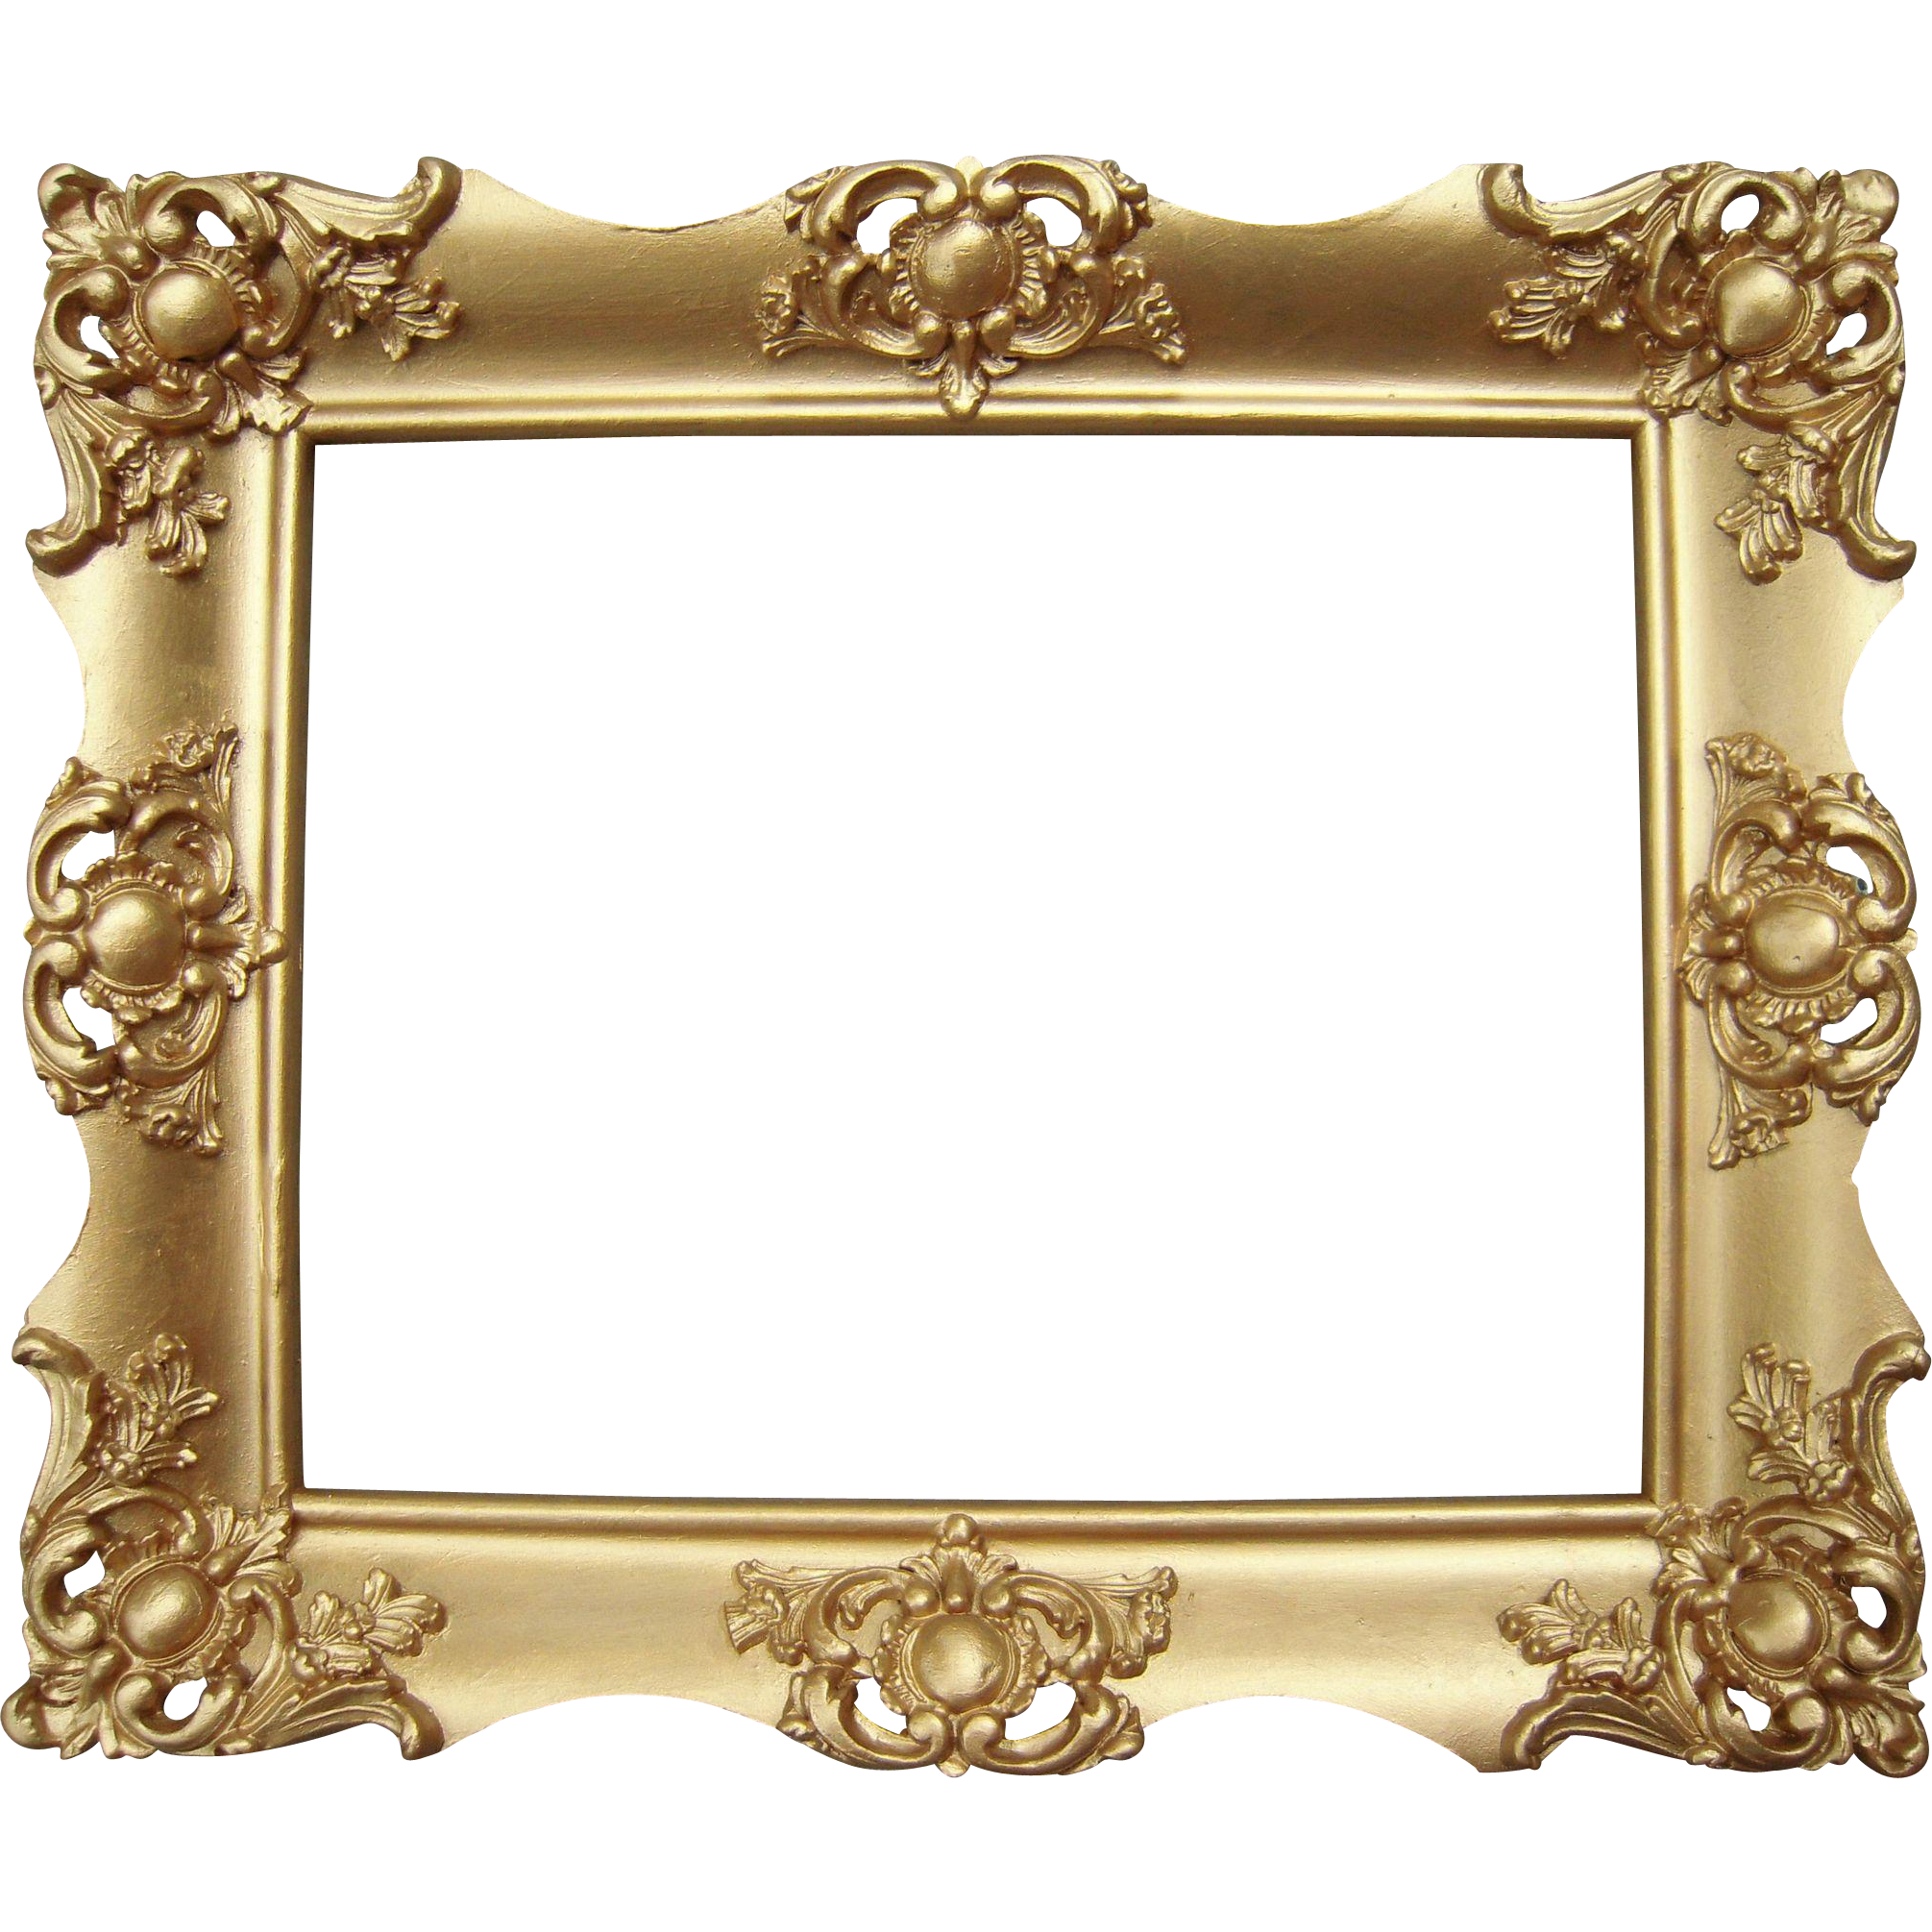 Ornate Gold Victorian Picture Frame 8 X 10